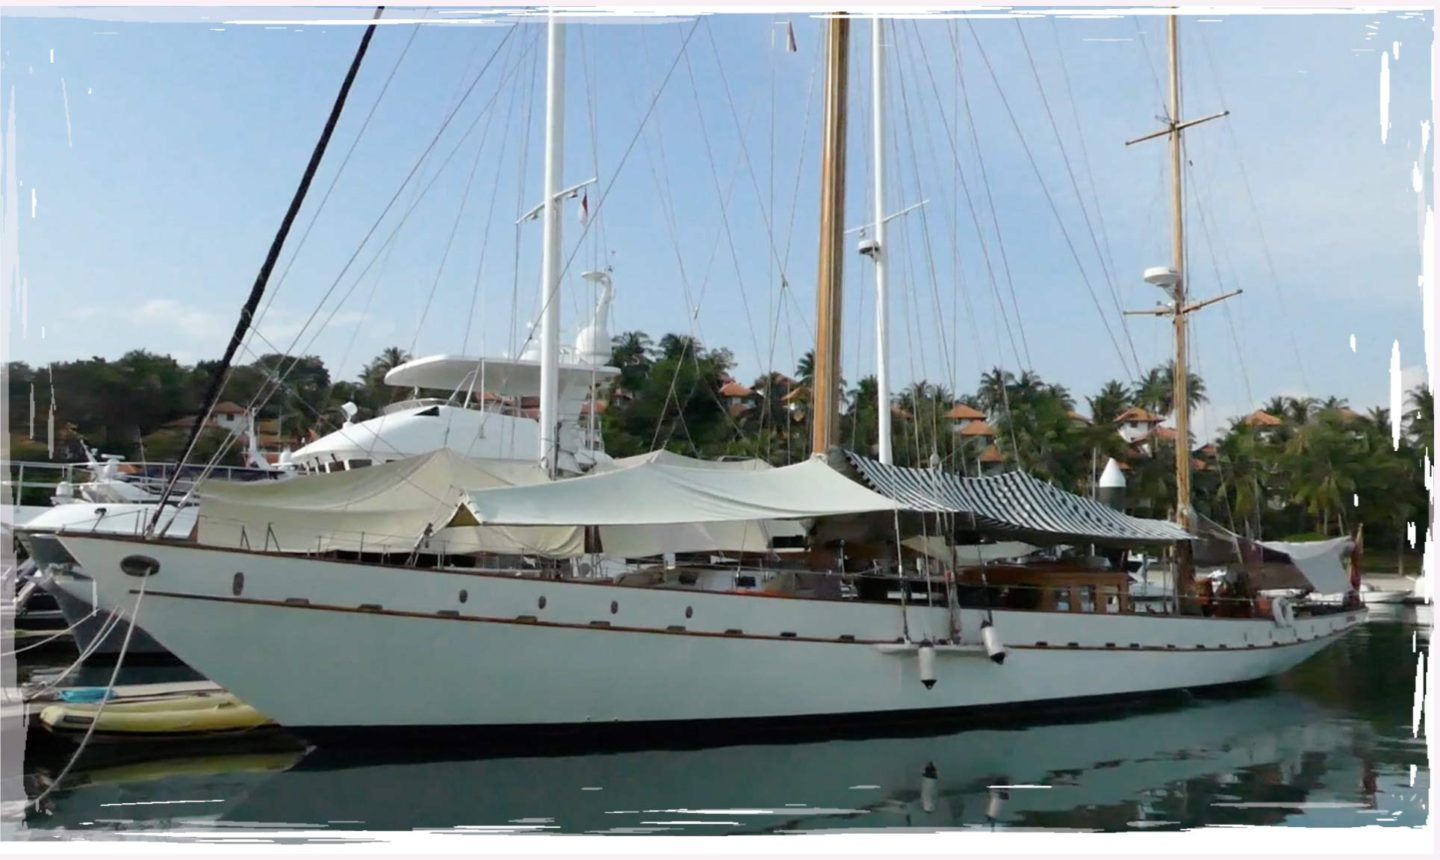 Batam Airbnb – RONA Sailing Yacht Perfect 3 Day Stay